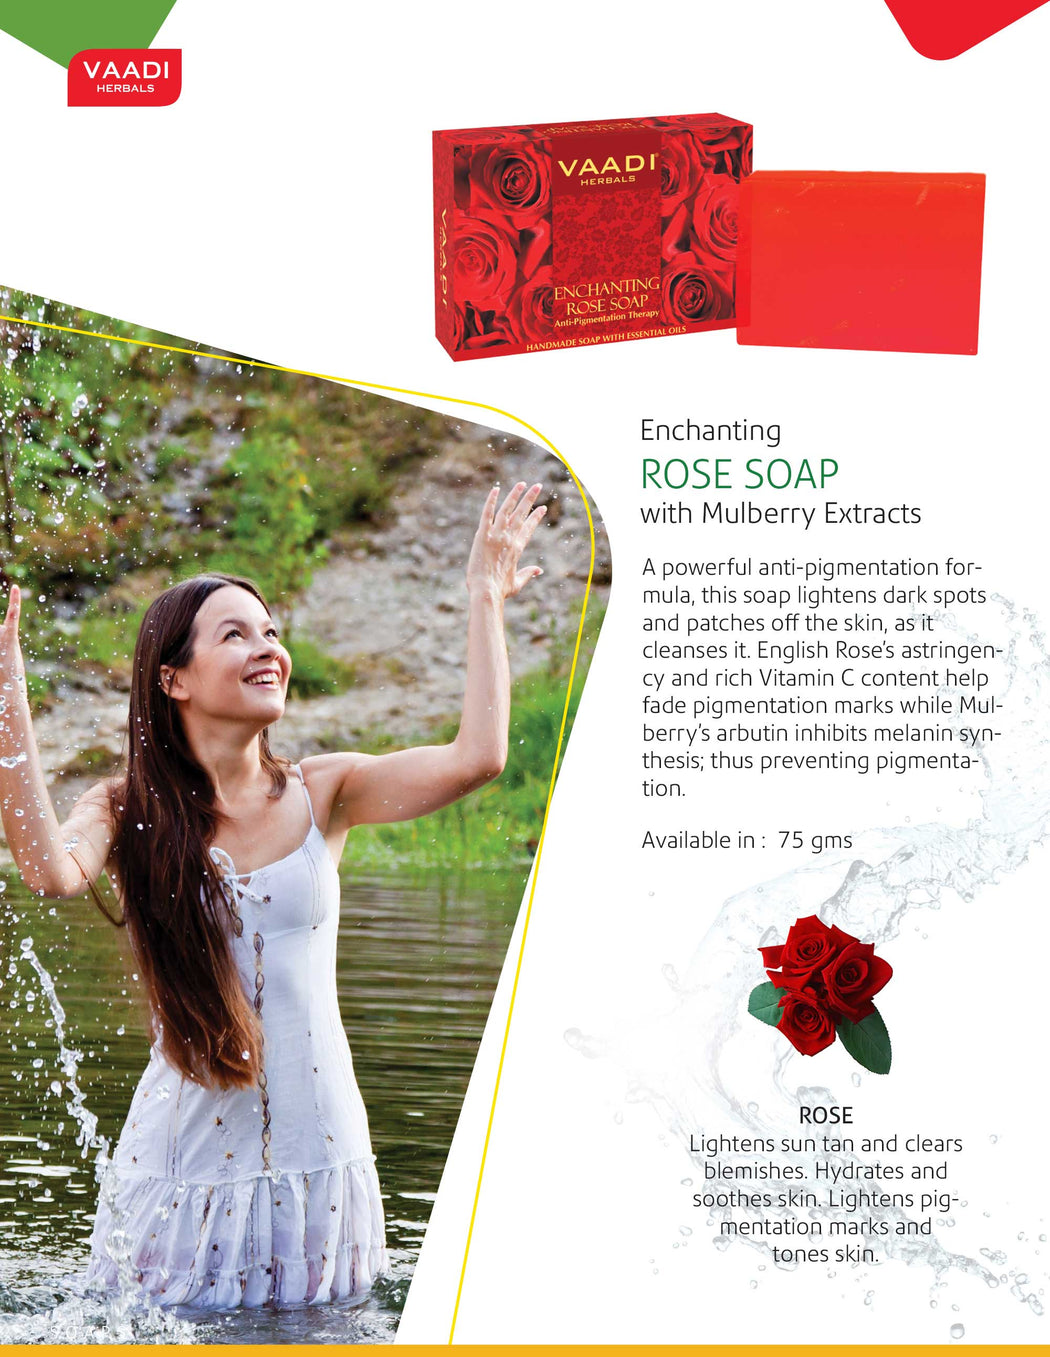 Enchanting Organic Rose Soap with Mulberry Extract - Anti Pigmentation Therapy (6 x 75 gms/2.7 oz)